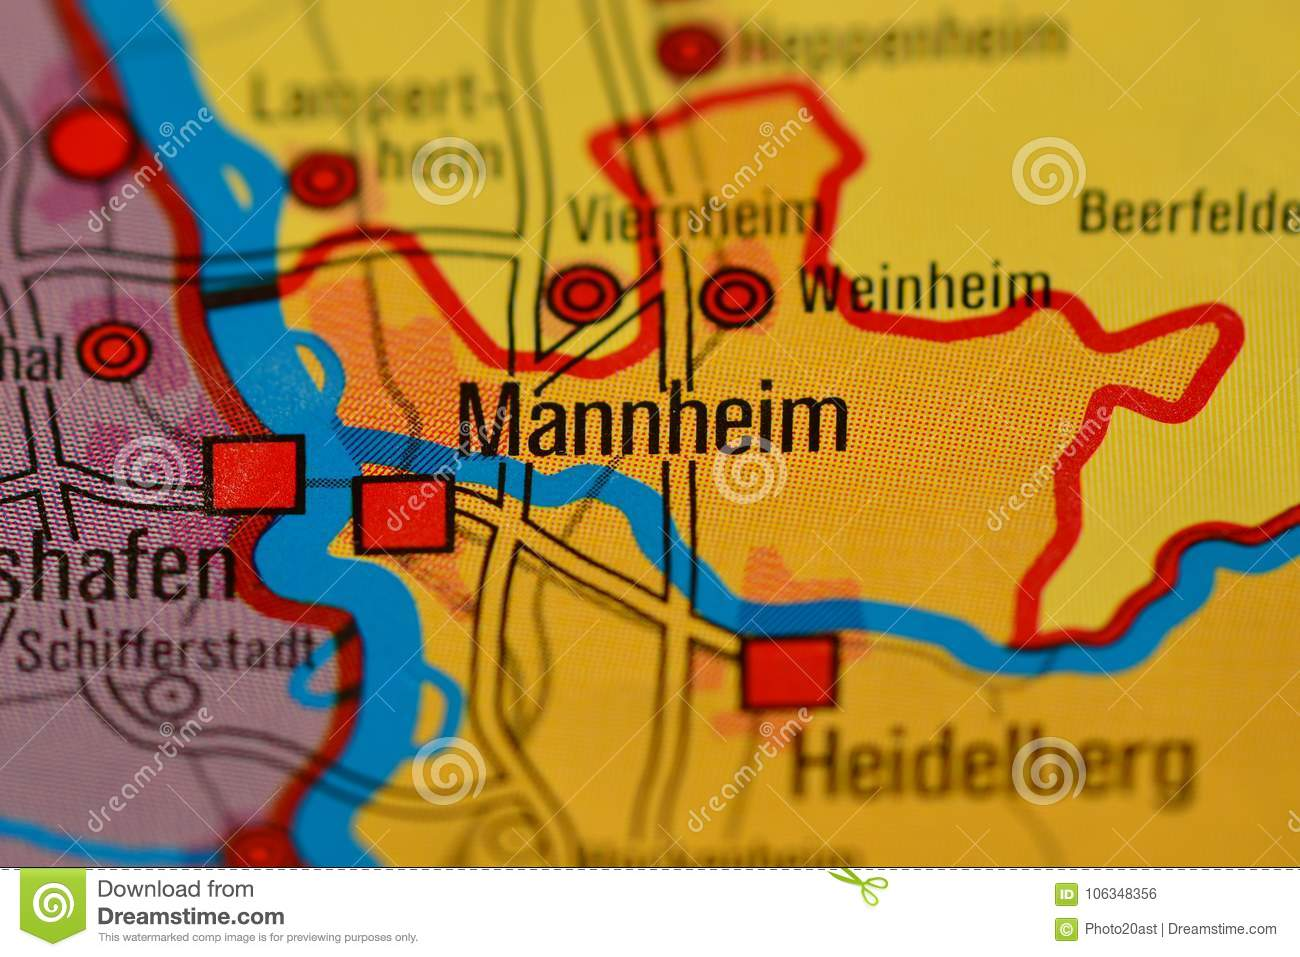 The Word MANNHEIM On The Map Stock Photo - Image of places ... Mannheim Germany Map on heidelberg castle, munich map, wiesbaden map, nuremberg germany map, wannsee germany map, lampertheim germany map, bad sachsa germany map, kohlberg germany map, coleman barracks germany map, alfdorf germany map, rhine river map, black forest, eberstadt germany map, jettenbach germany map, reims germany map, heligoland germany map, mainz germany map, lutz germany map, havixbeck germany map, wanfried germany map, bavaria germany map,